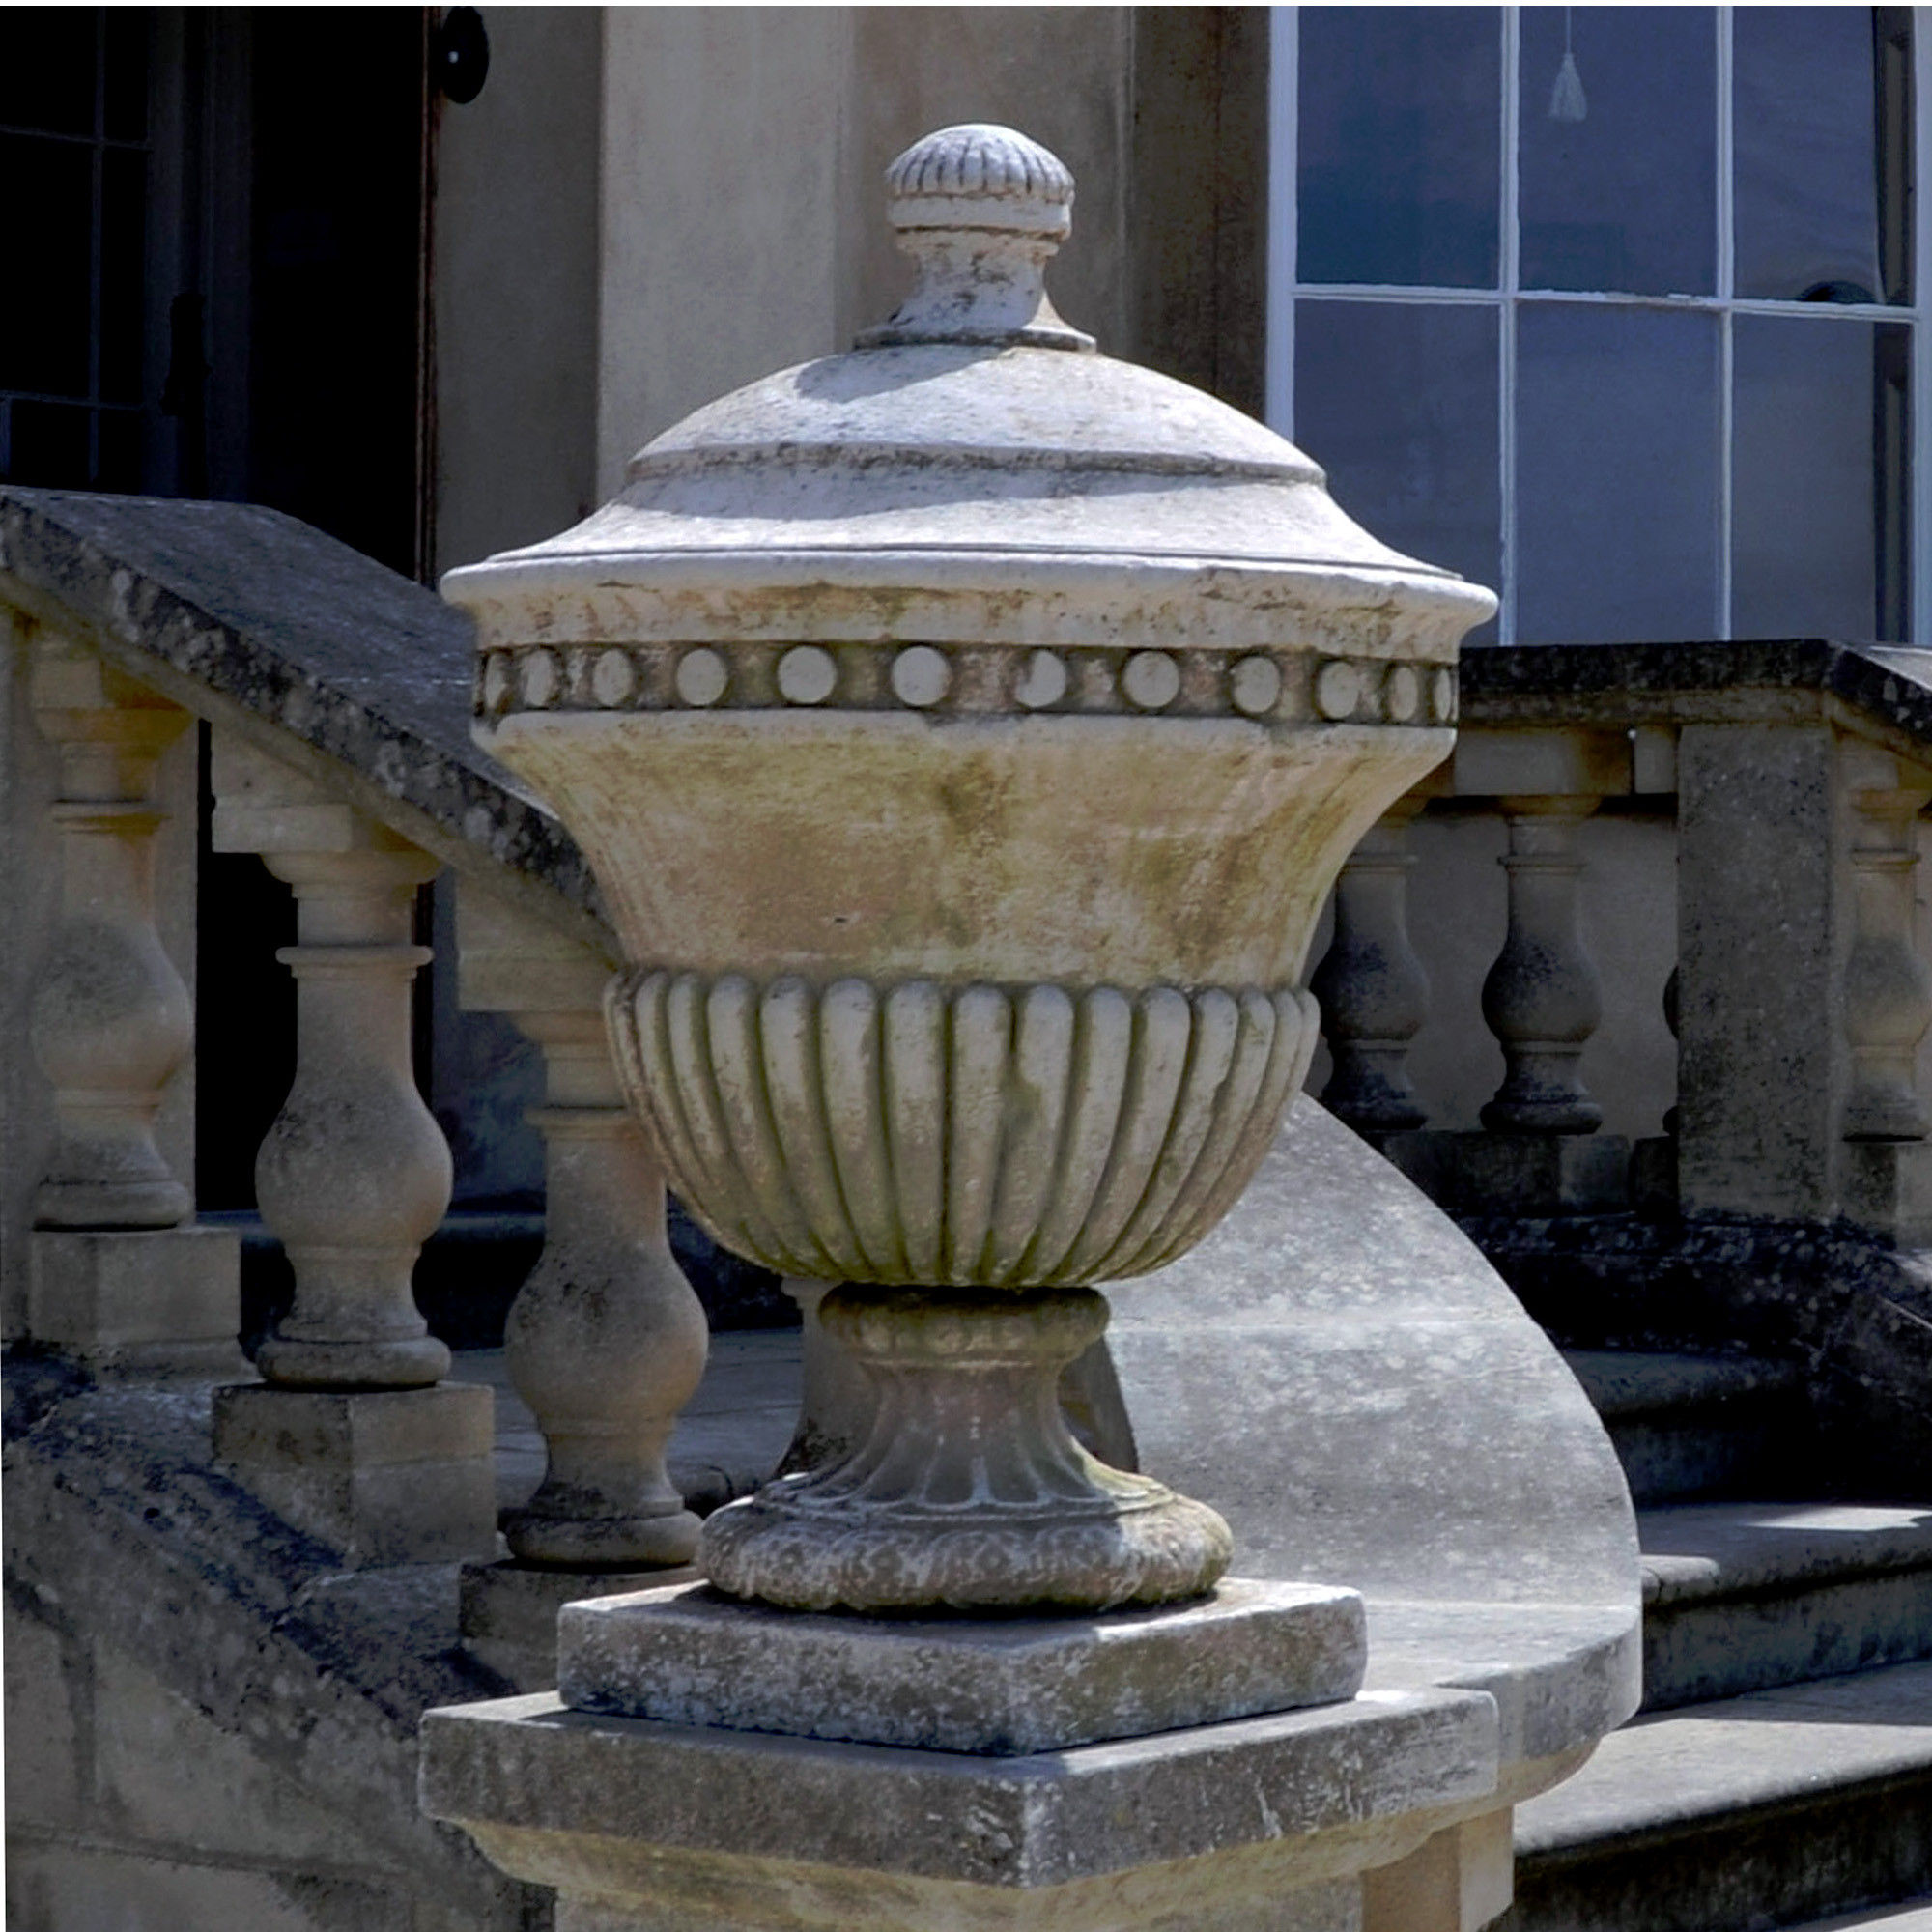 The Heritage Finial